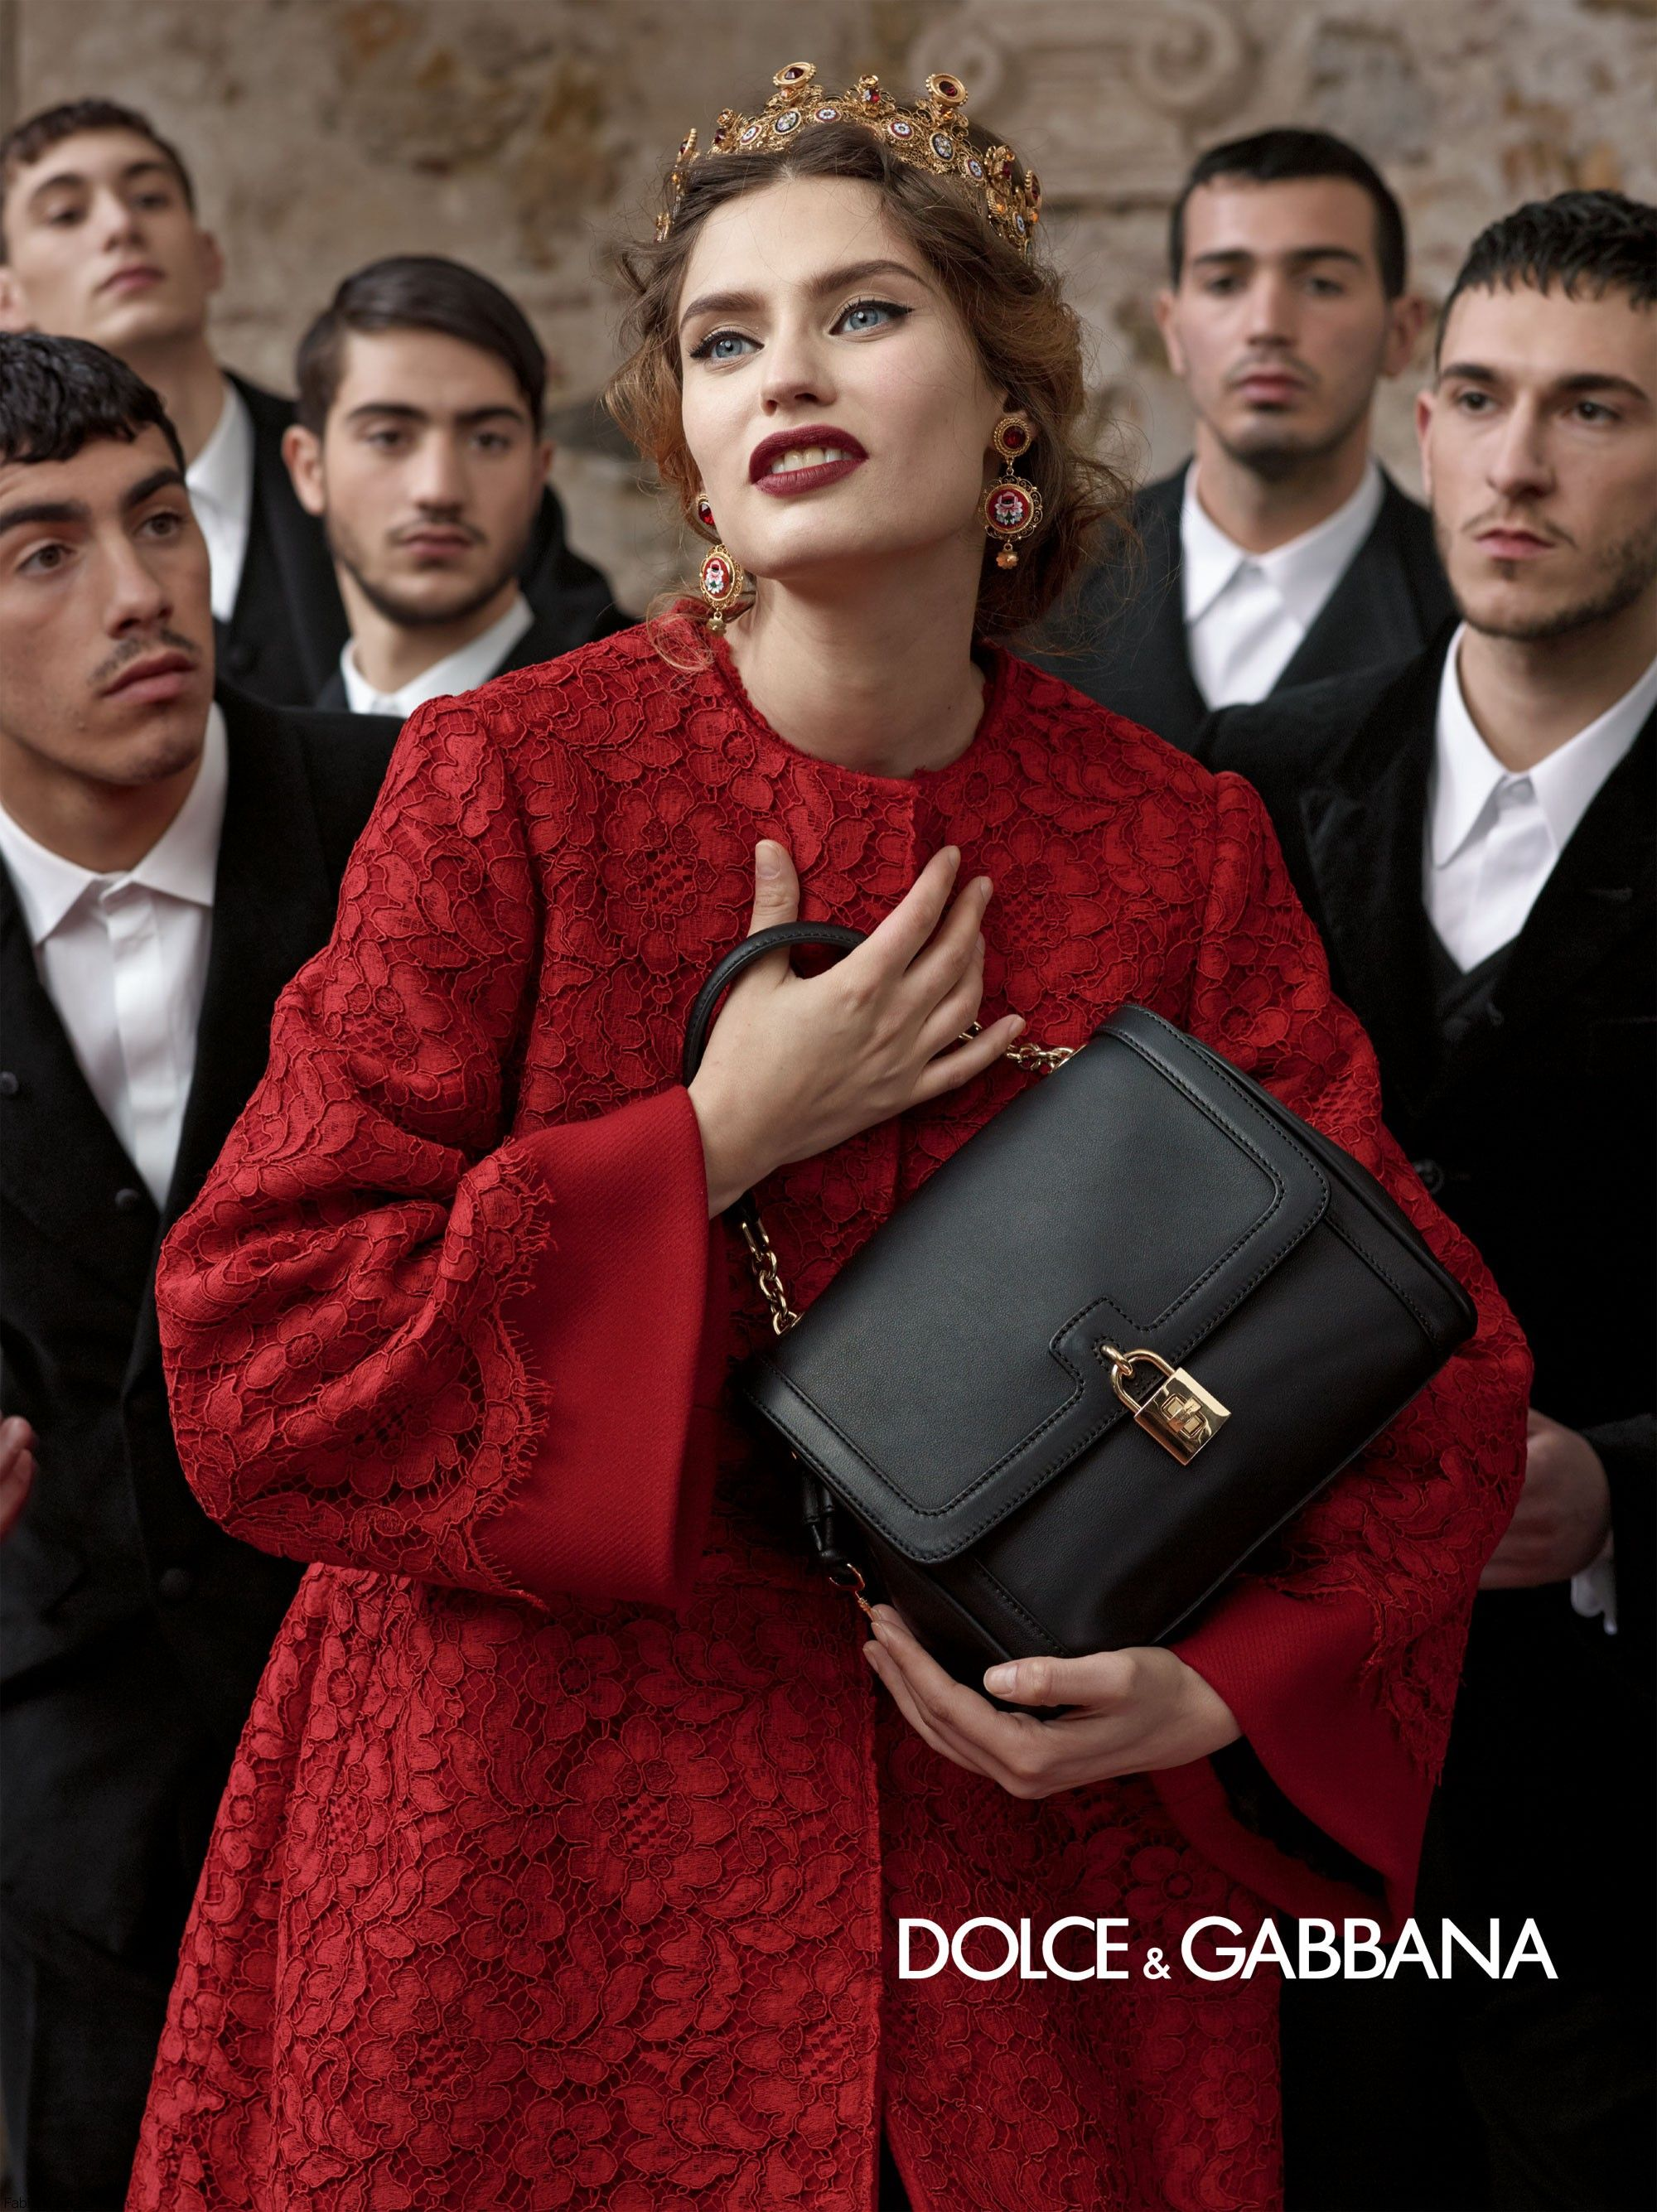 dolce-and-gabbana-fw-2014-women-adv-campaign-13